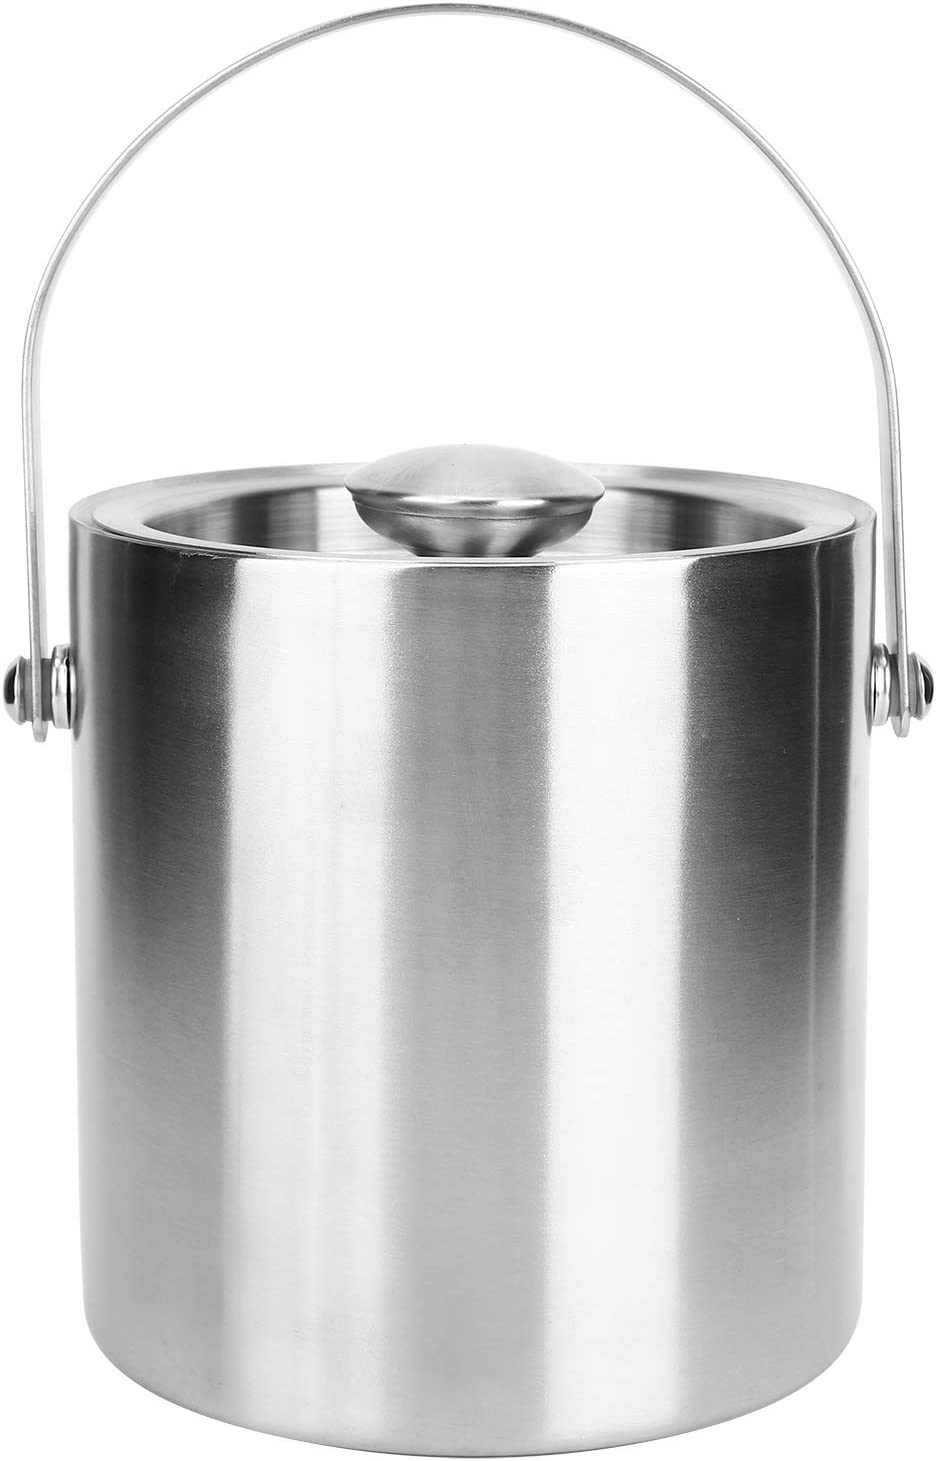 Champagne Barrel, Food Grade Safe And Healthy Wine Bucket, Double Layer Stainless Steel for Home Use KTV Wine Champagne Barrel Bar Supplies